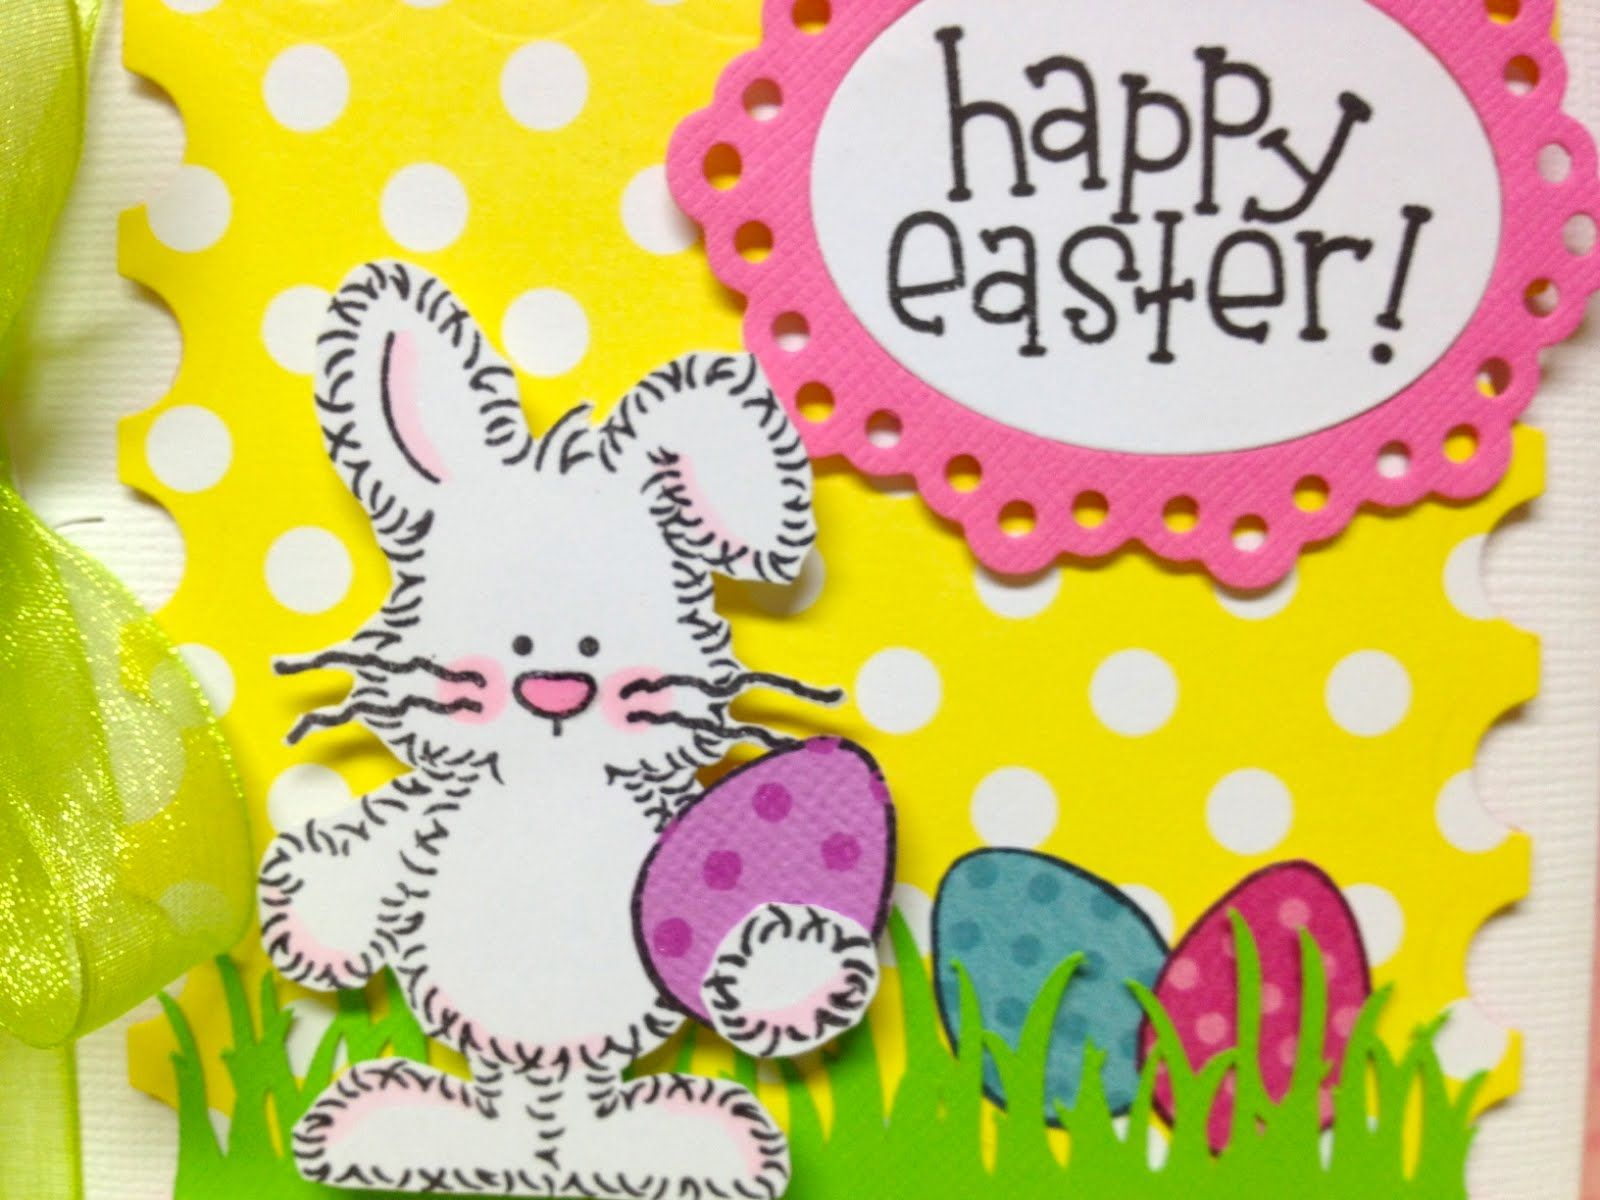 Happy Easter Cards Happy Easter Pinterest Happy Easter Cards